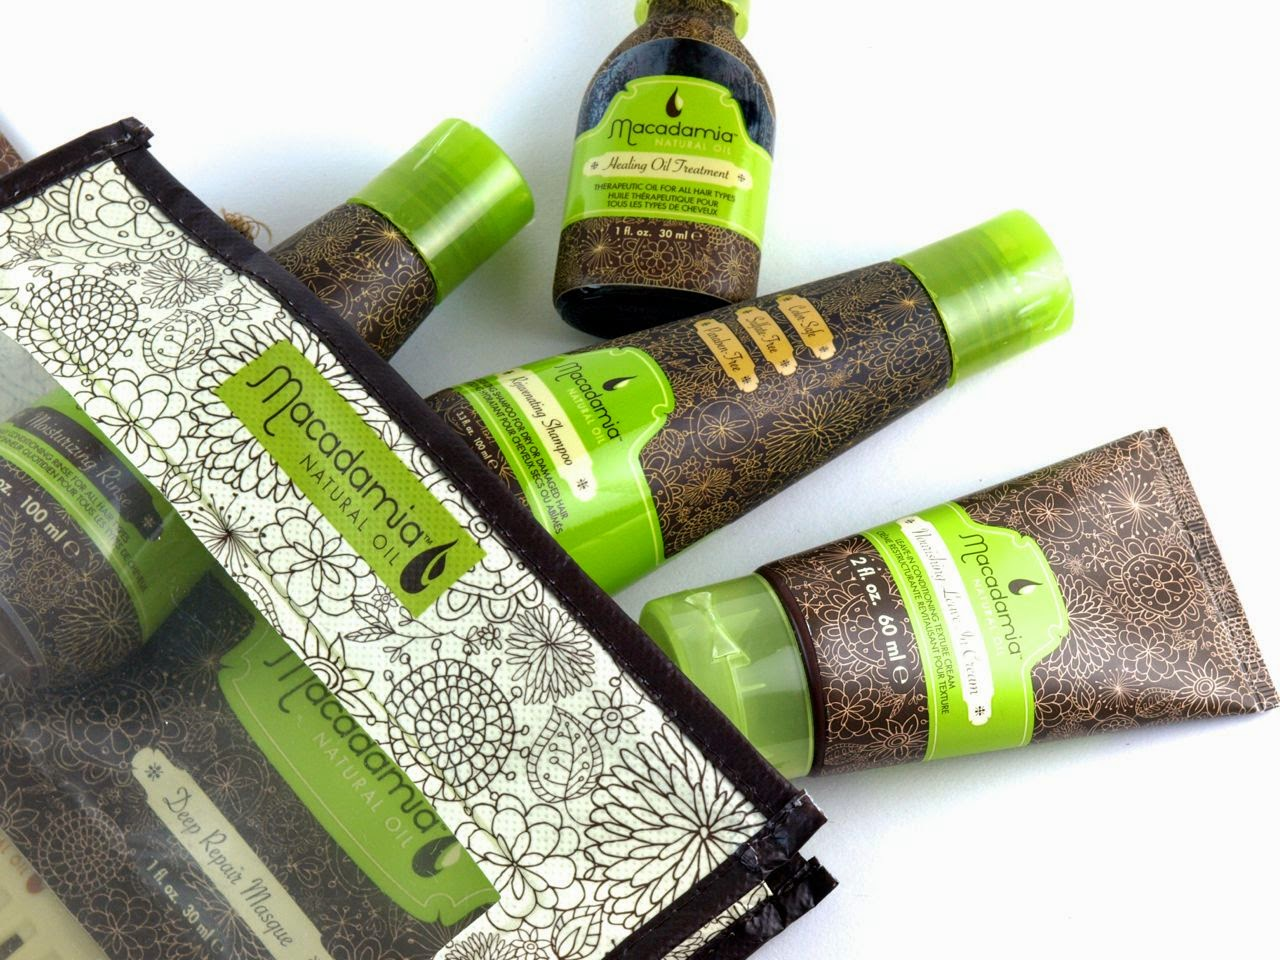 Macadamia Natural Oil Travel Set